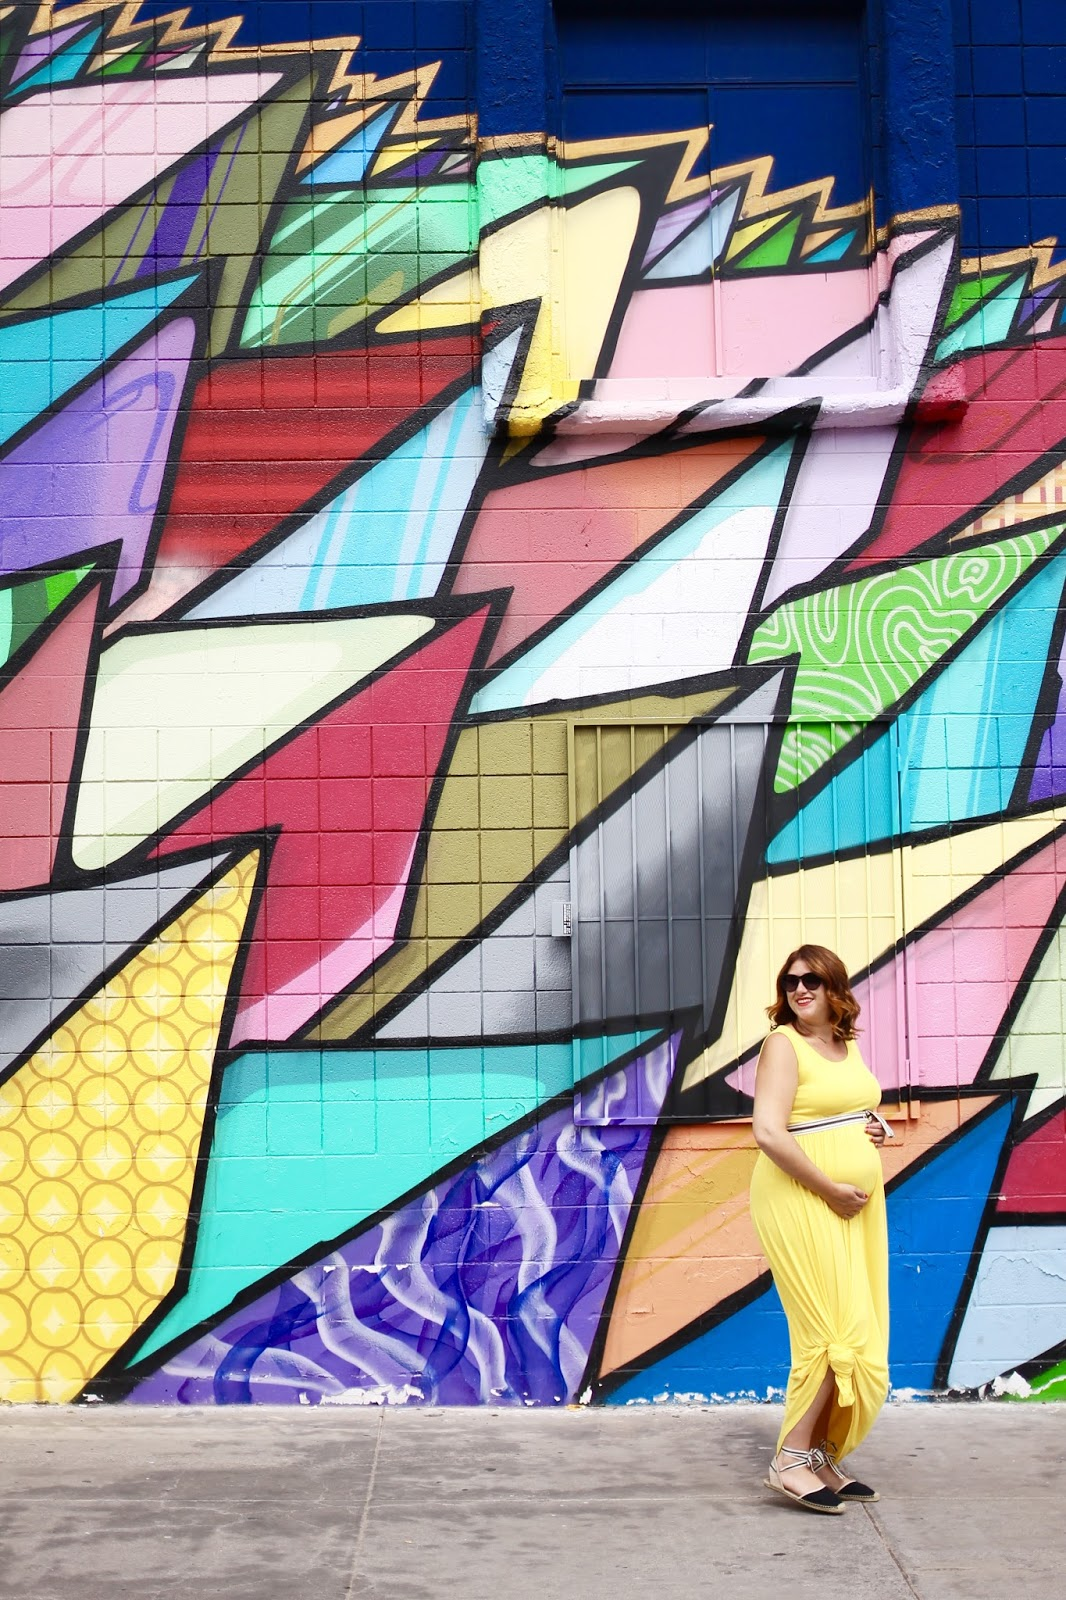 soludos, yellow maxi dress, red hair, maternity outfit, cute outfit, las vegas street art, mural